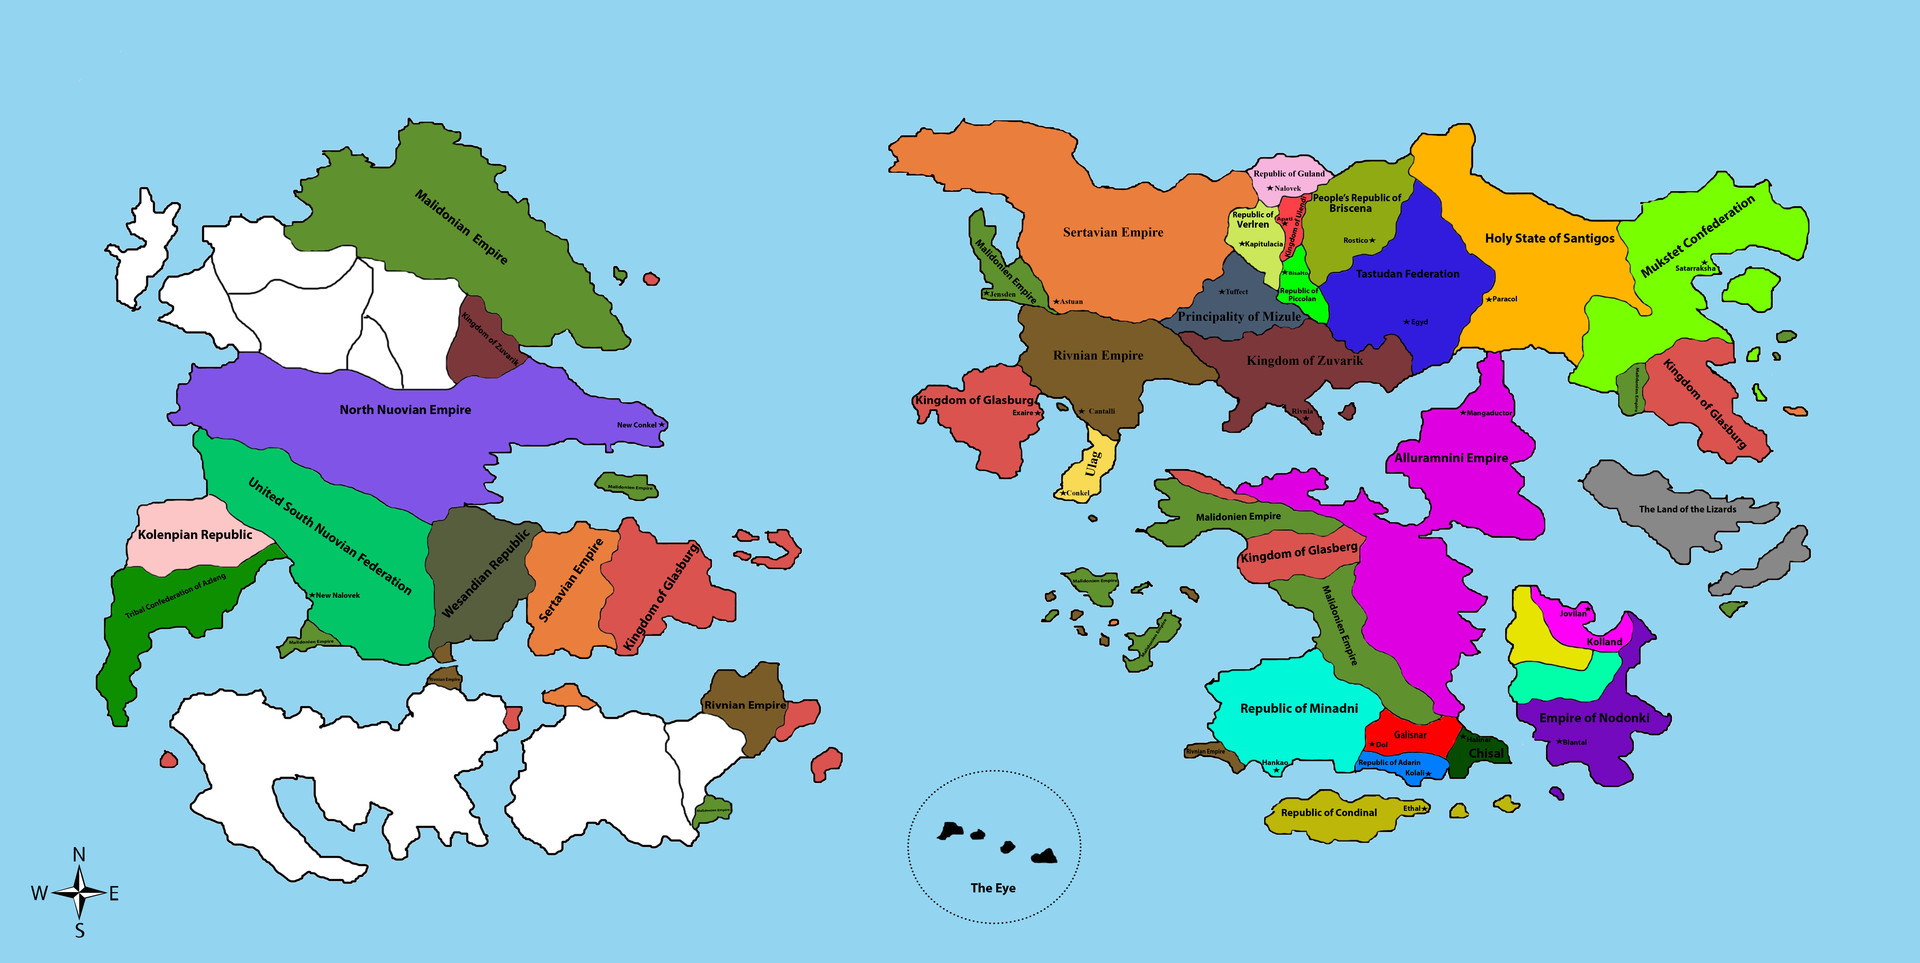 Map making quick and simple point and click cartographic software it could be something as simple looking as or even more so than this map or this one or even this one though preferably more aesthetically pleasing gumiabroncs Images